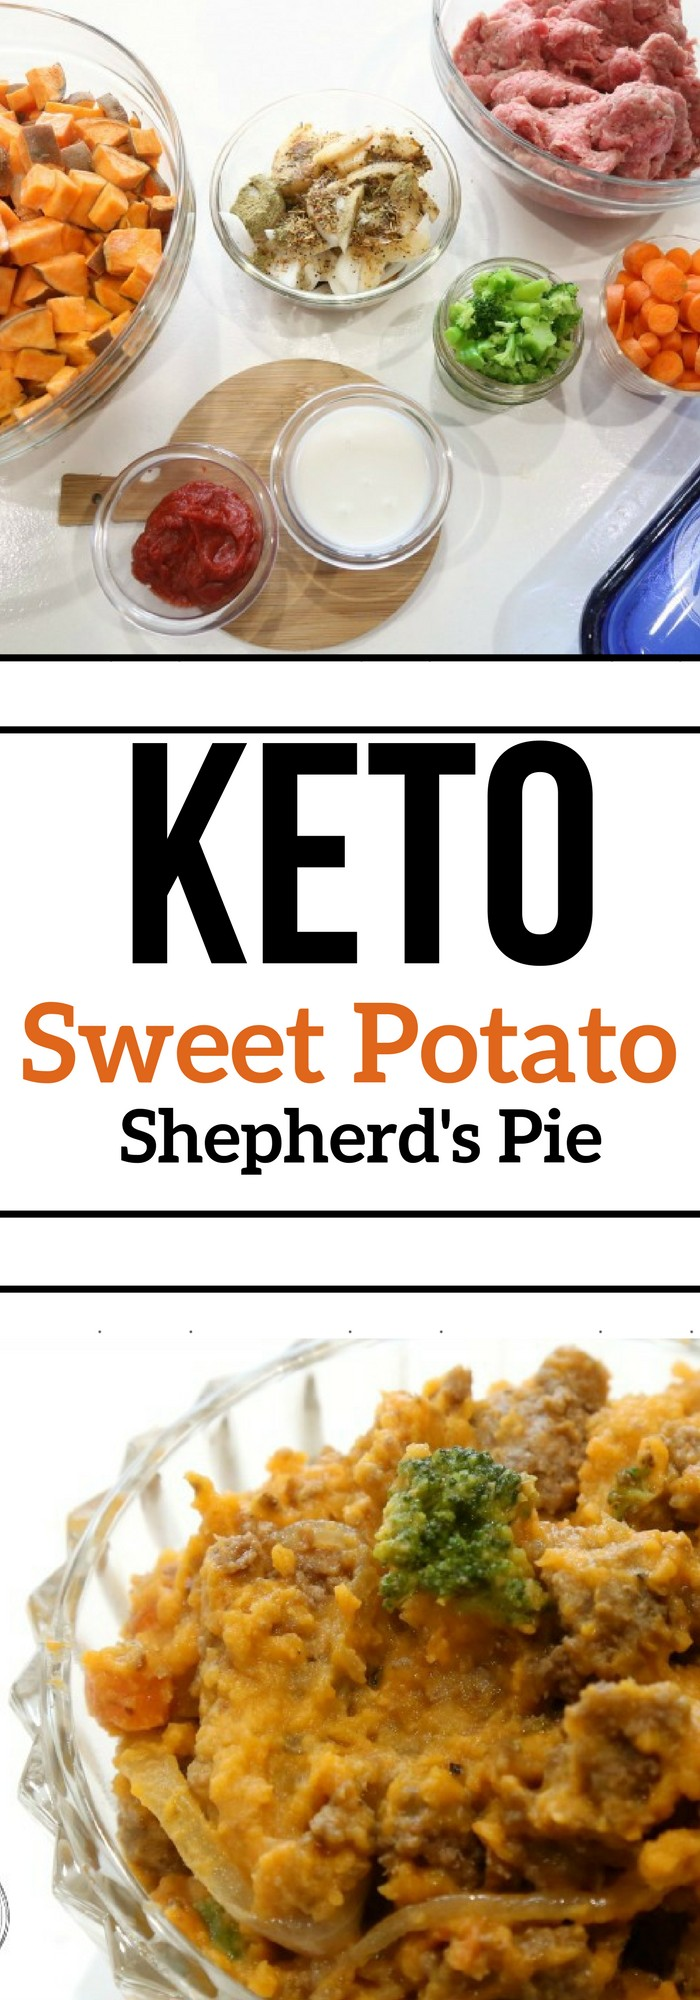 Keto Low Carb High Fat Baked Shepherd's Pie Recipe